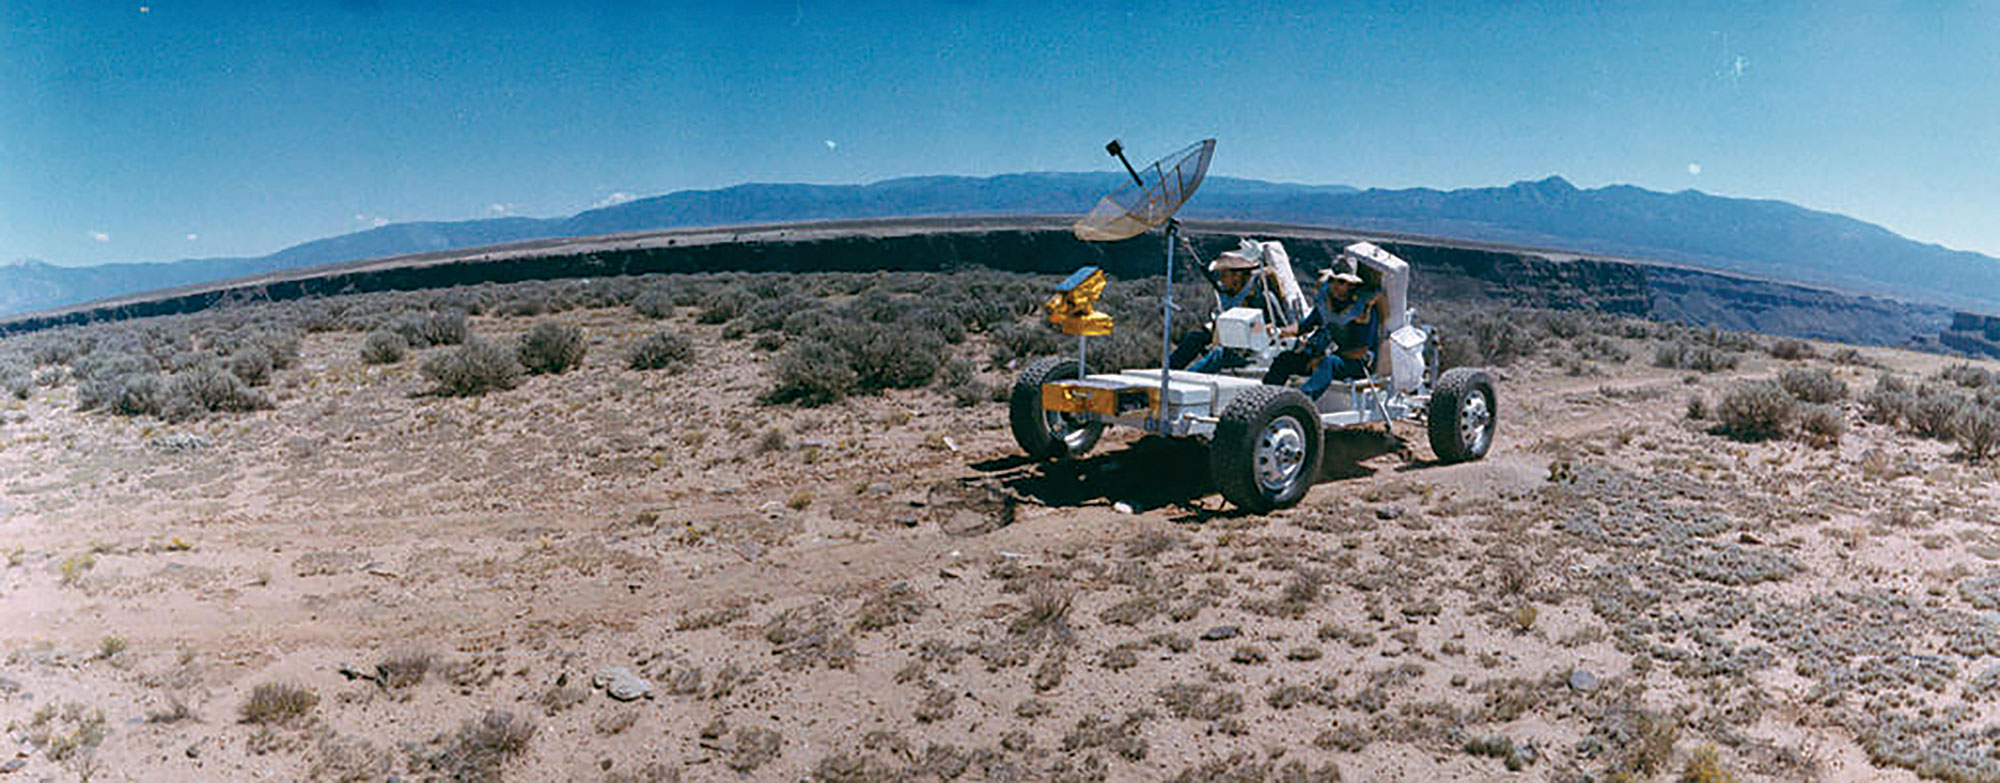 Apollo astronauts Charlie Duke (left) and John Young (right) test drive GROVER (geological rover), an early version of the lunar rover, in Coconino County circa 1965; Photo courtesy Center of Astrogeology, U.S. Geological Survey